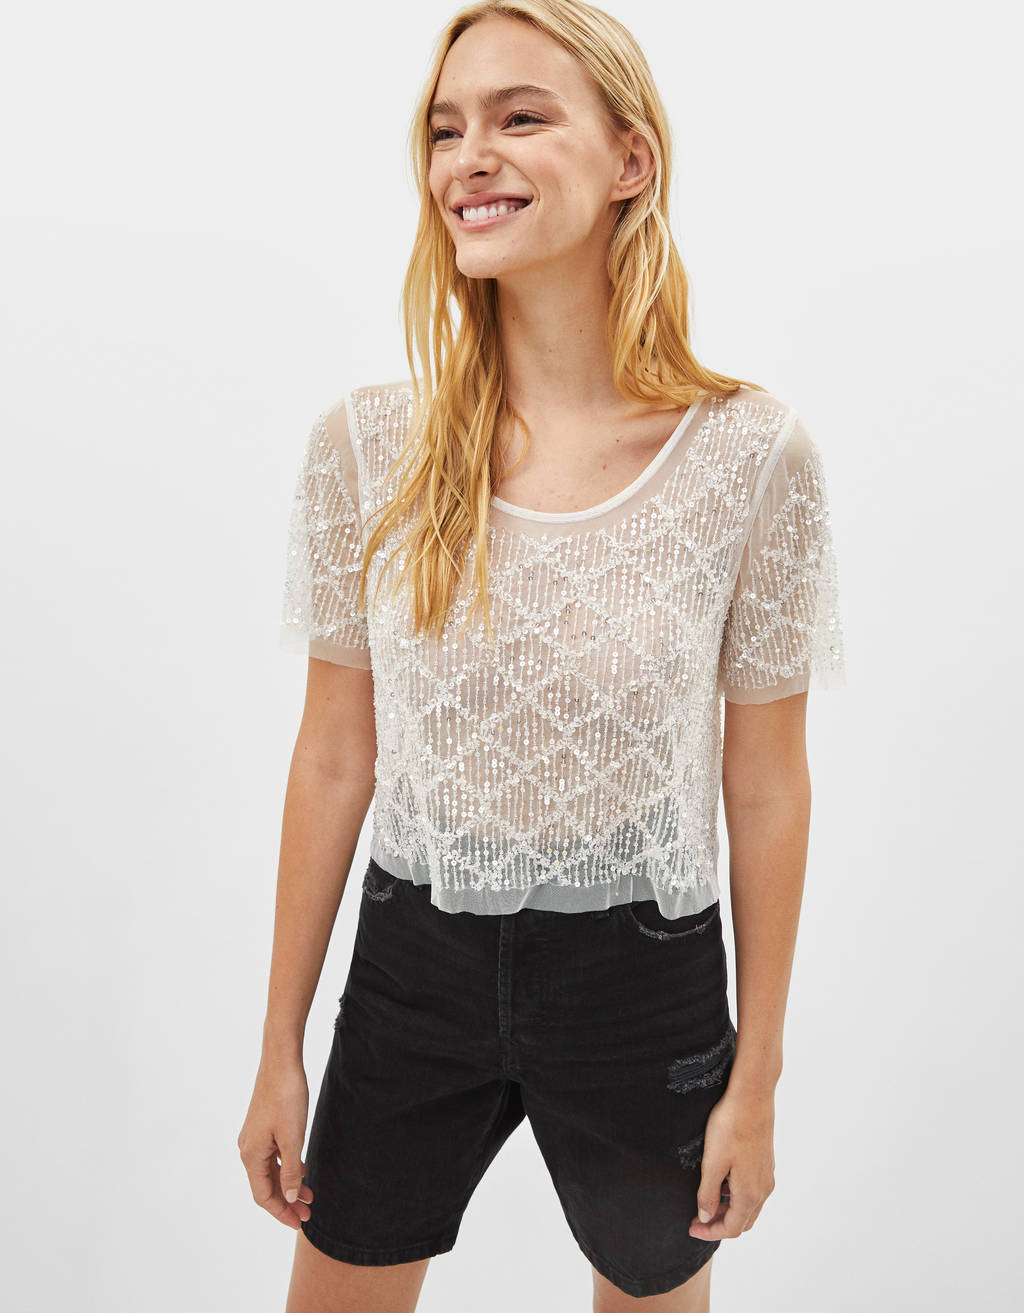 Cropped T-shirt with bejeweled detailing